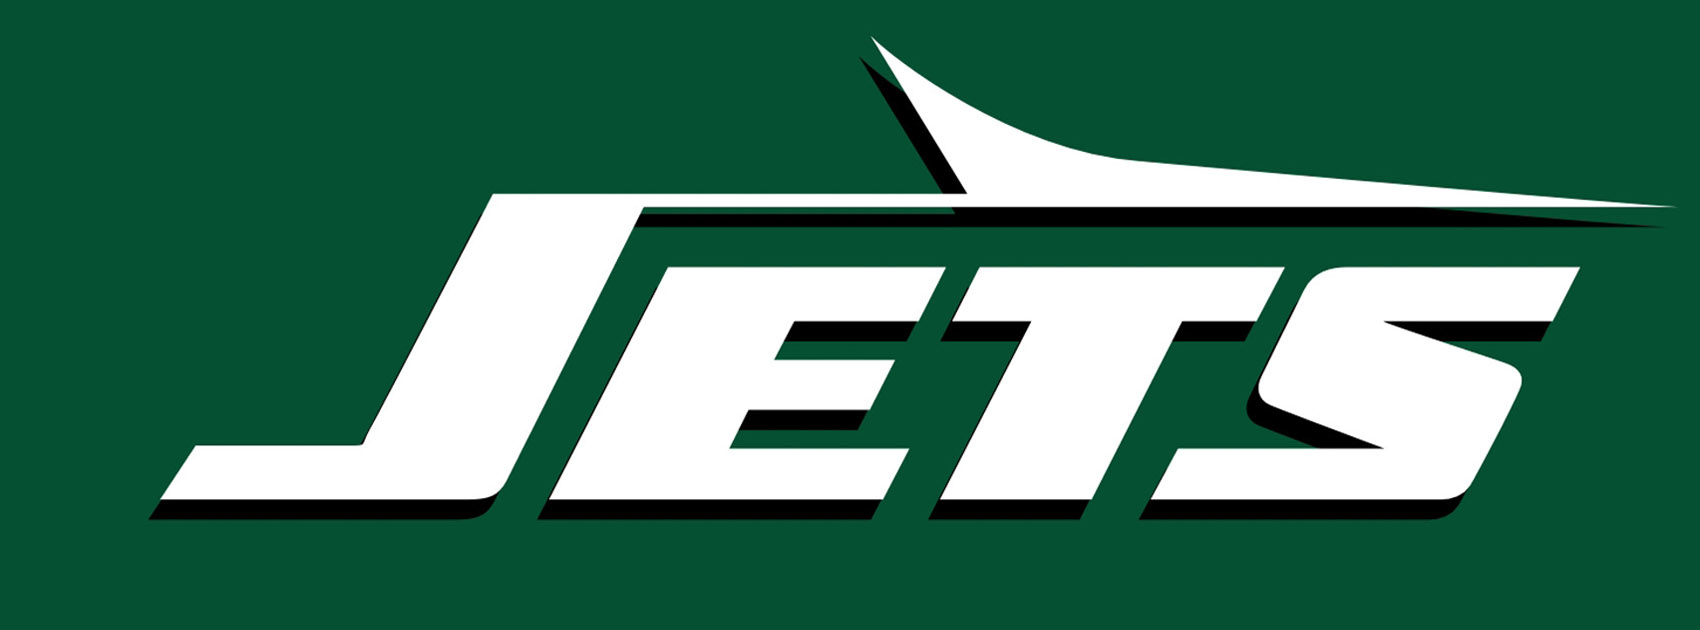 new york jets wallpaper for iphone